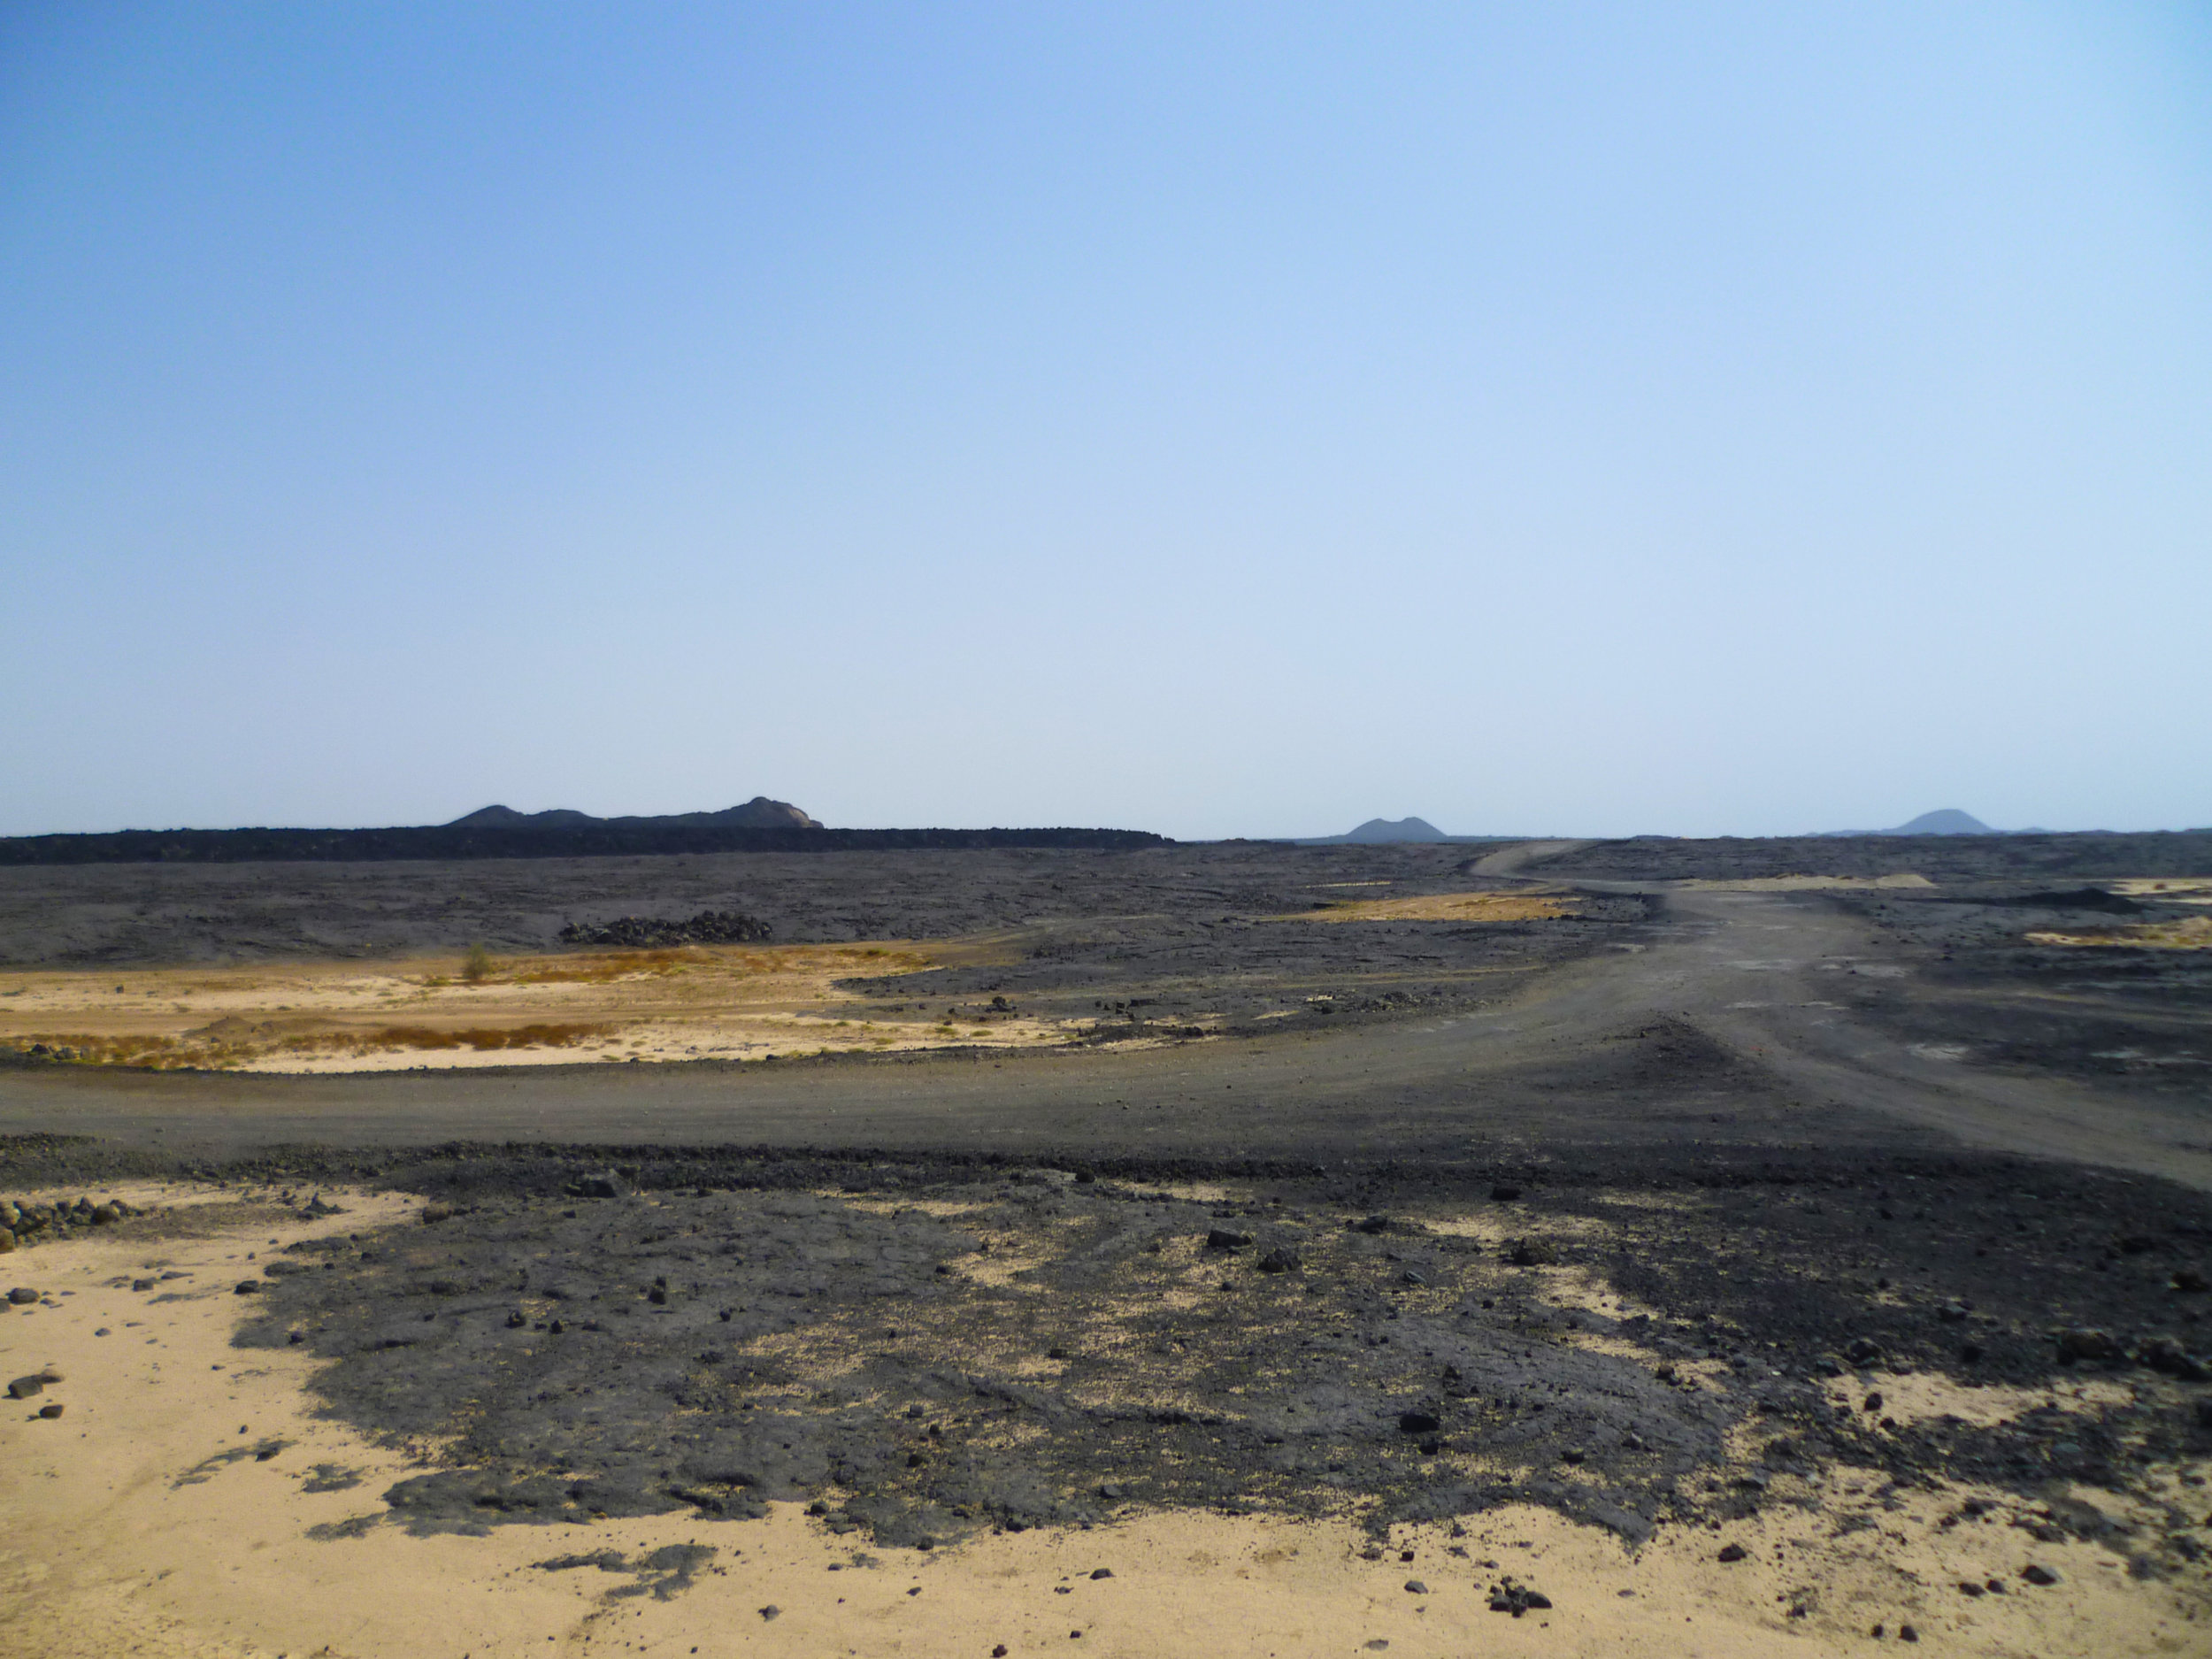 Next stop Djibouti - the road off into the desert...